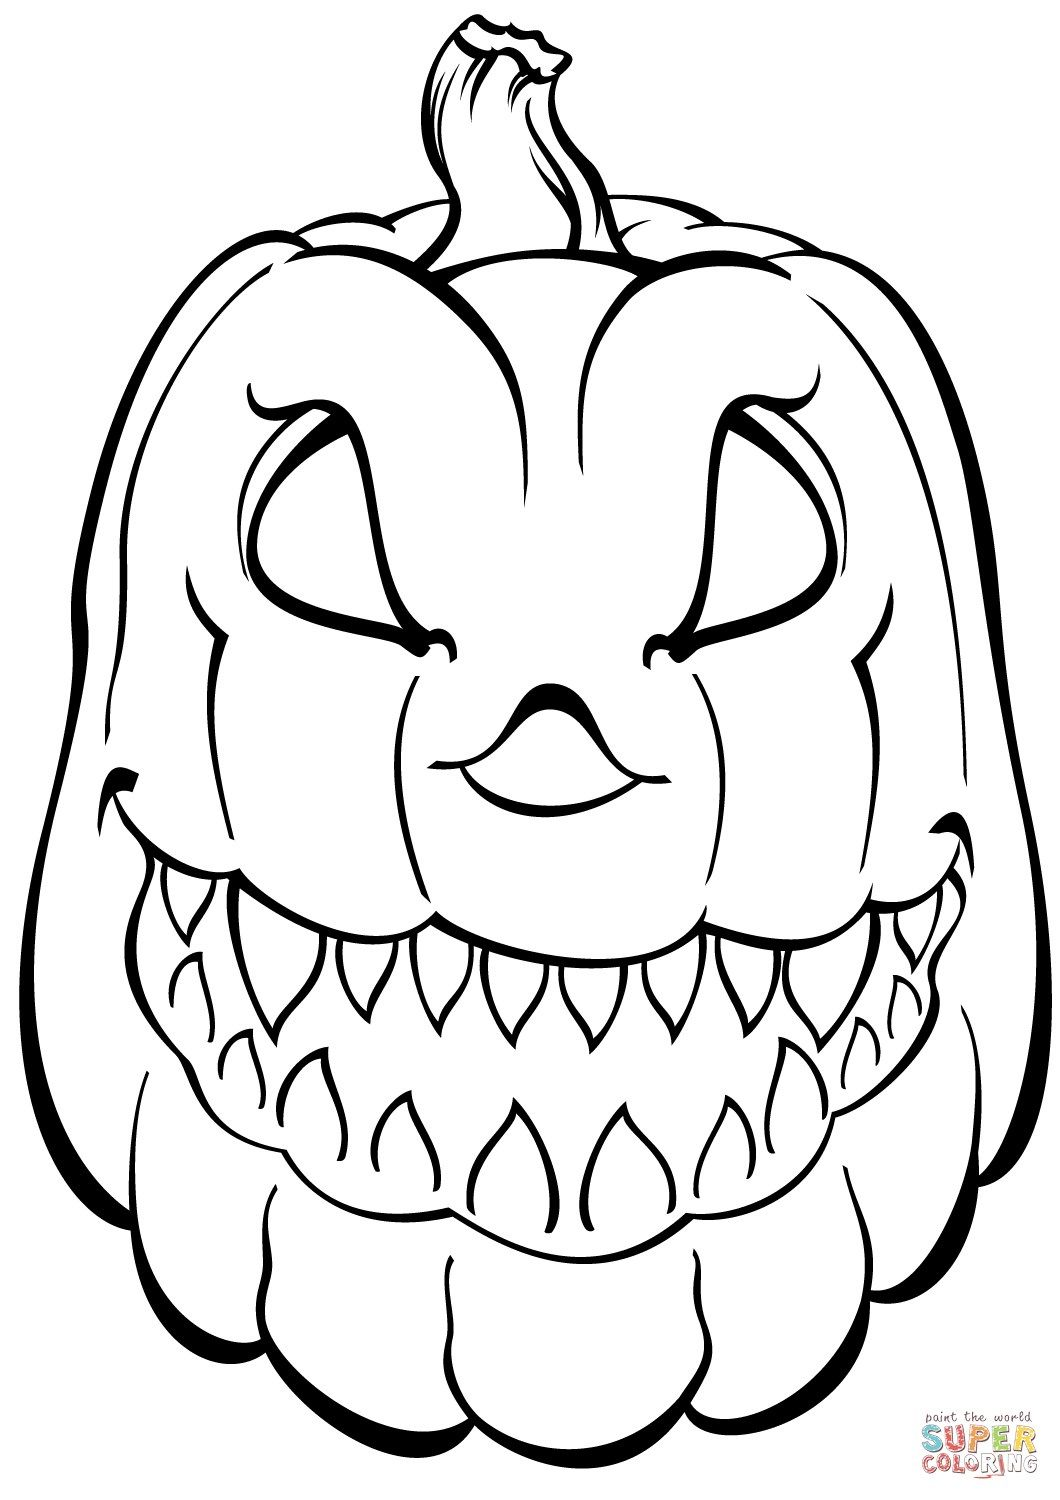 22 Creative Photo Of Pumpkin Coloring Pages Pumpkin Coloring